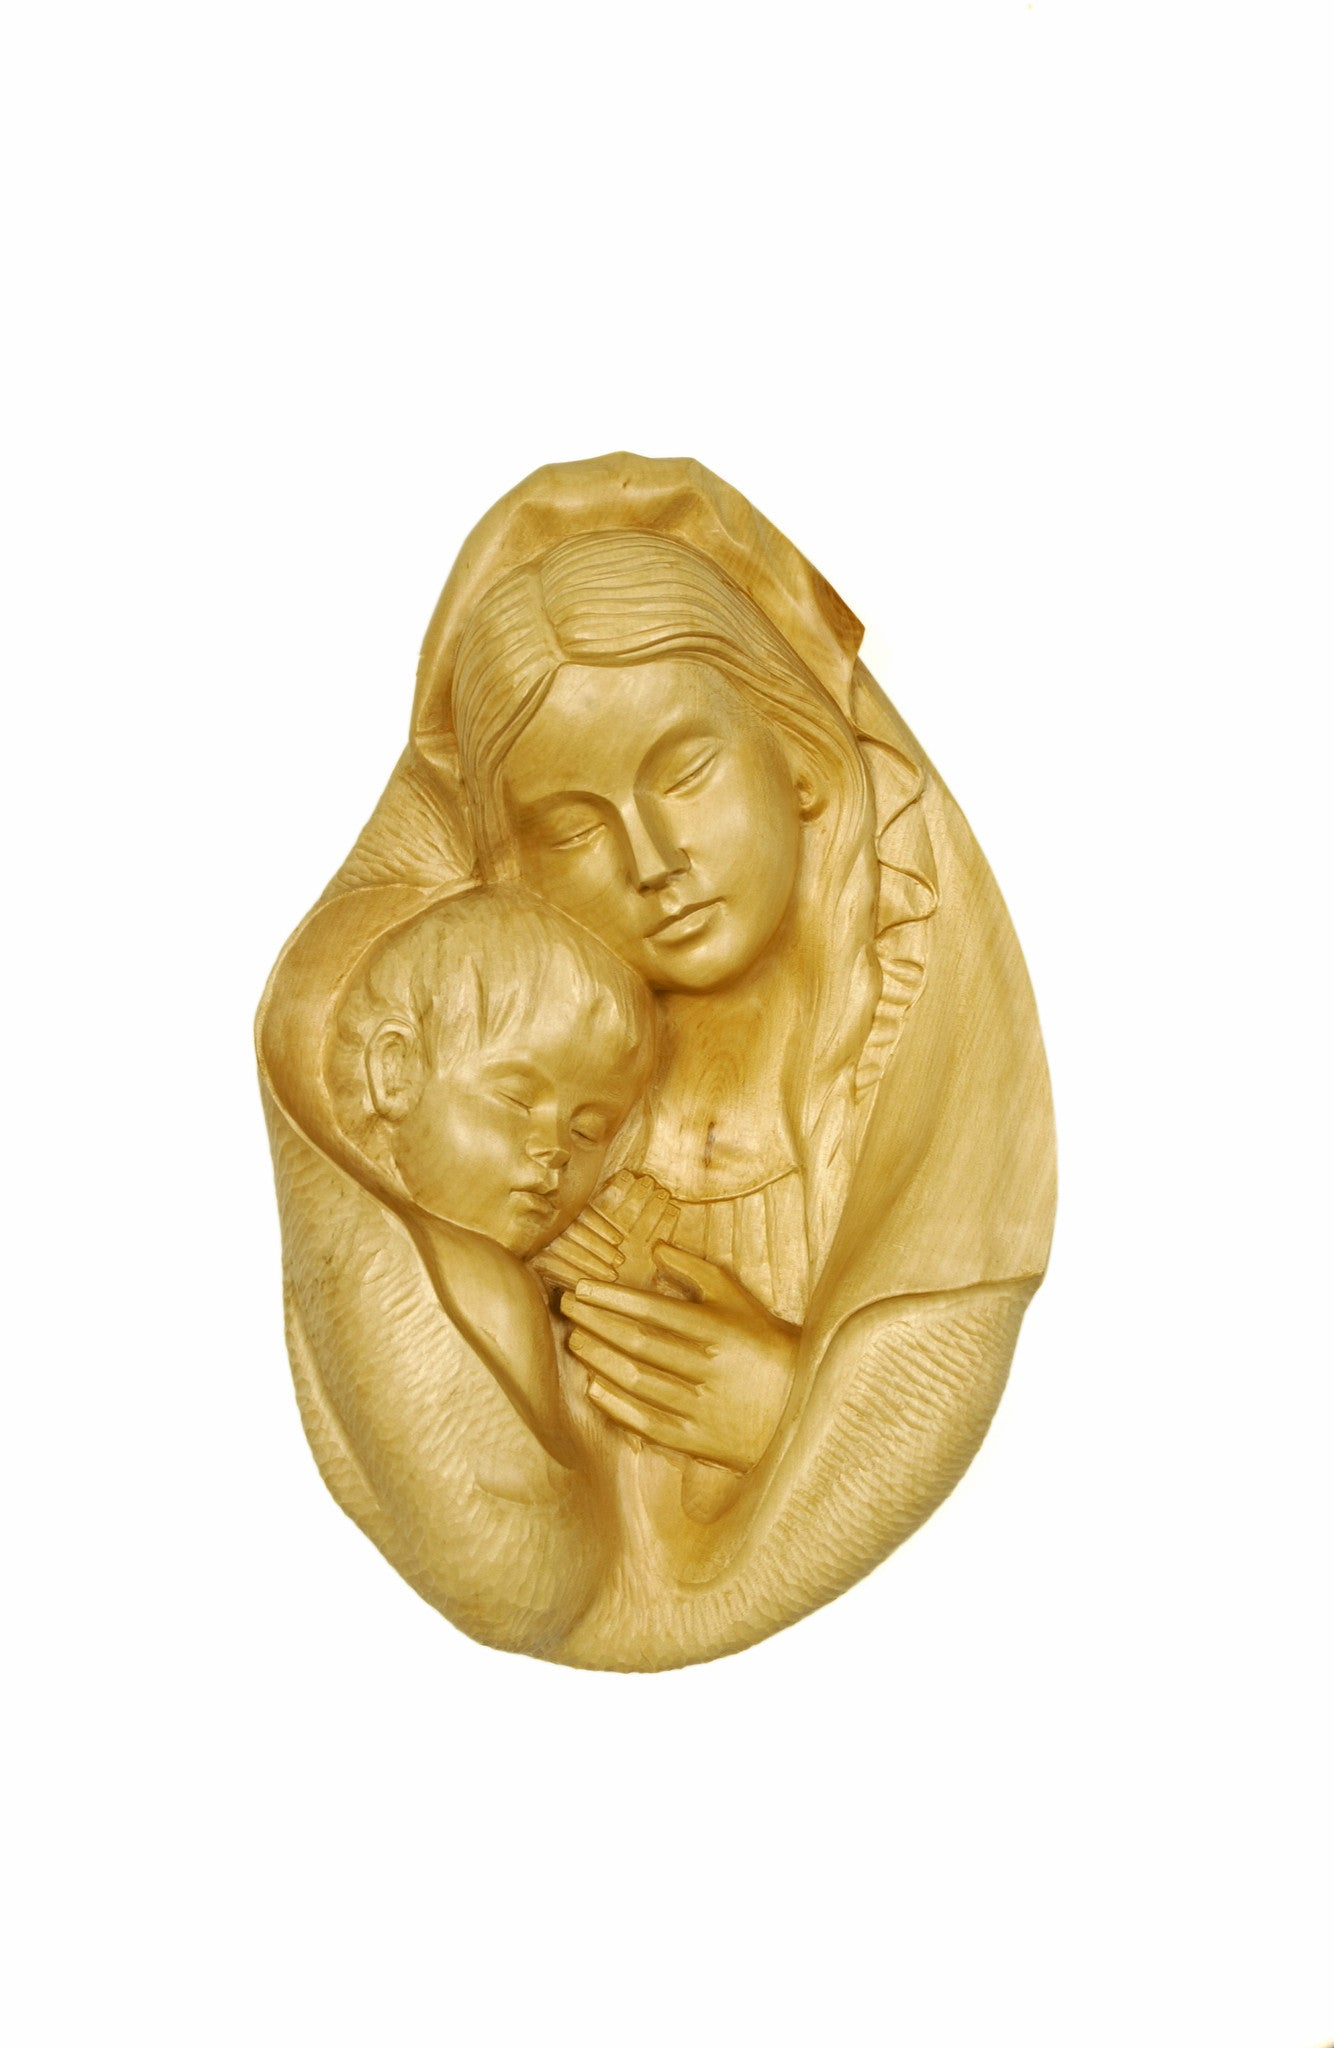 Mary with Child Jesus Wood Carving